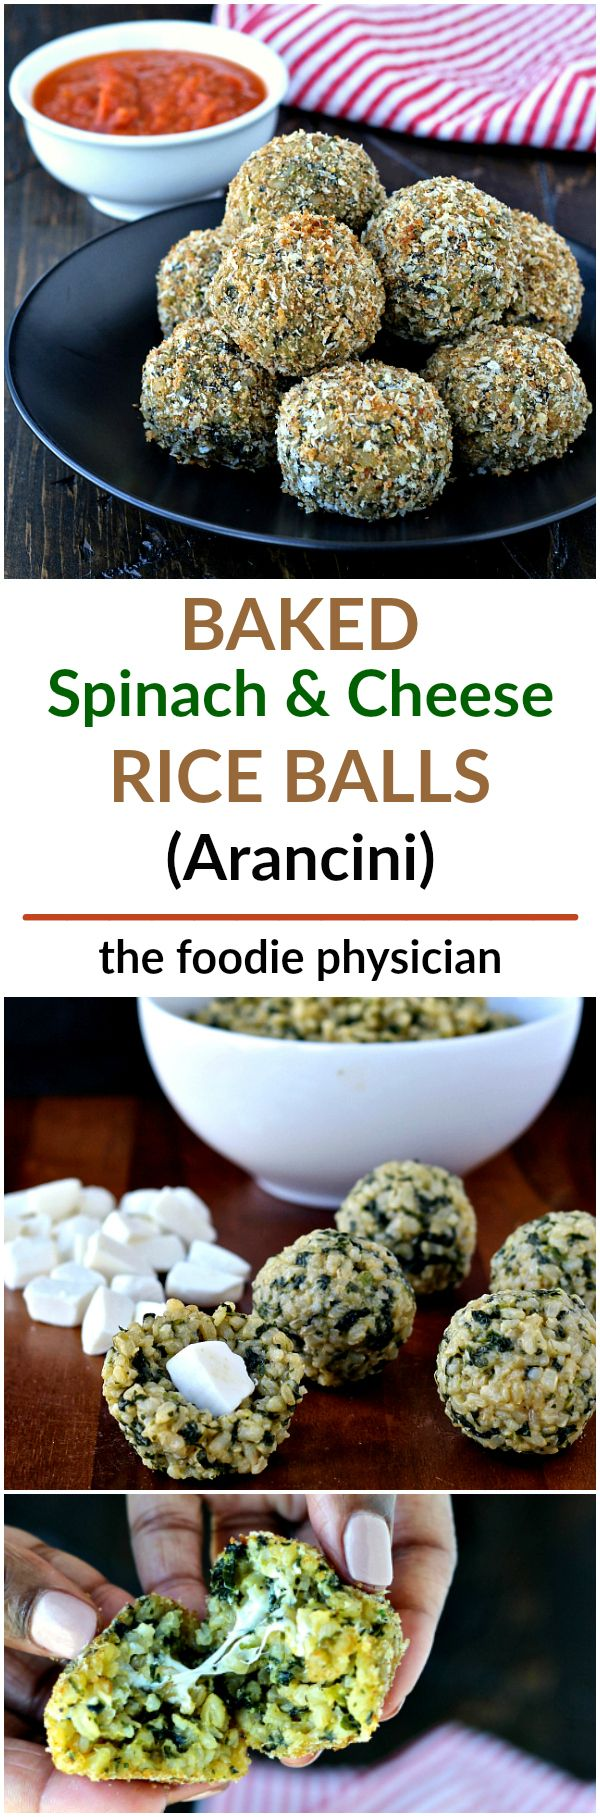 Baked Spinach and Cheese Rice Balls- these delicious rice balls are a healthy remake of classic Italian arancini. | @foodiephysician